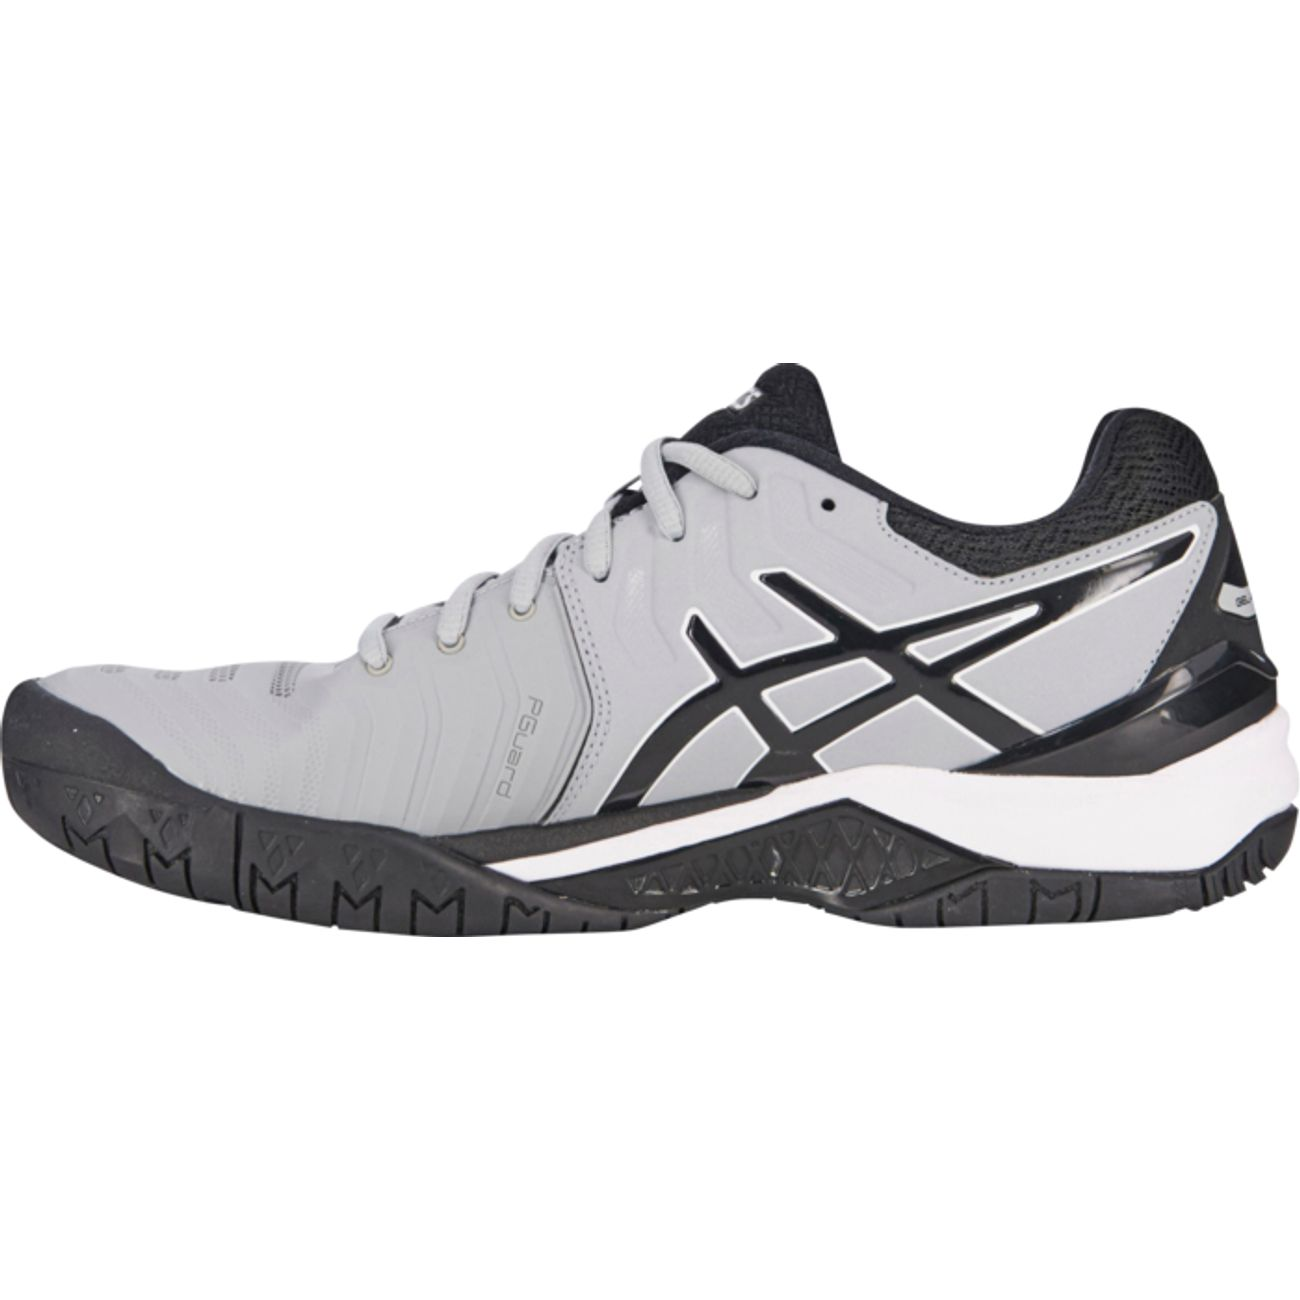 Chaussures de tennis   ASICS GEL-RESOLUTION 7